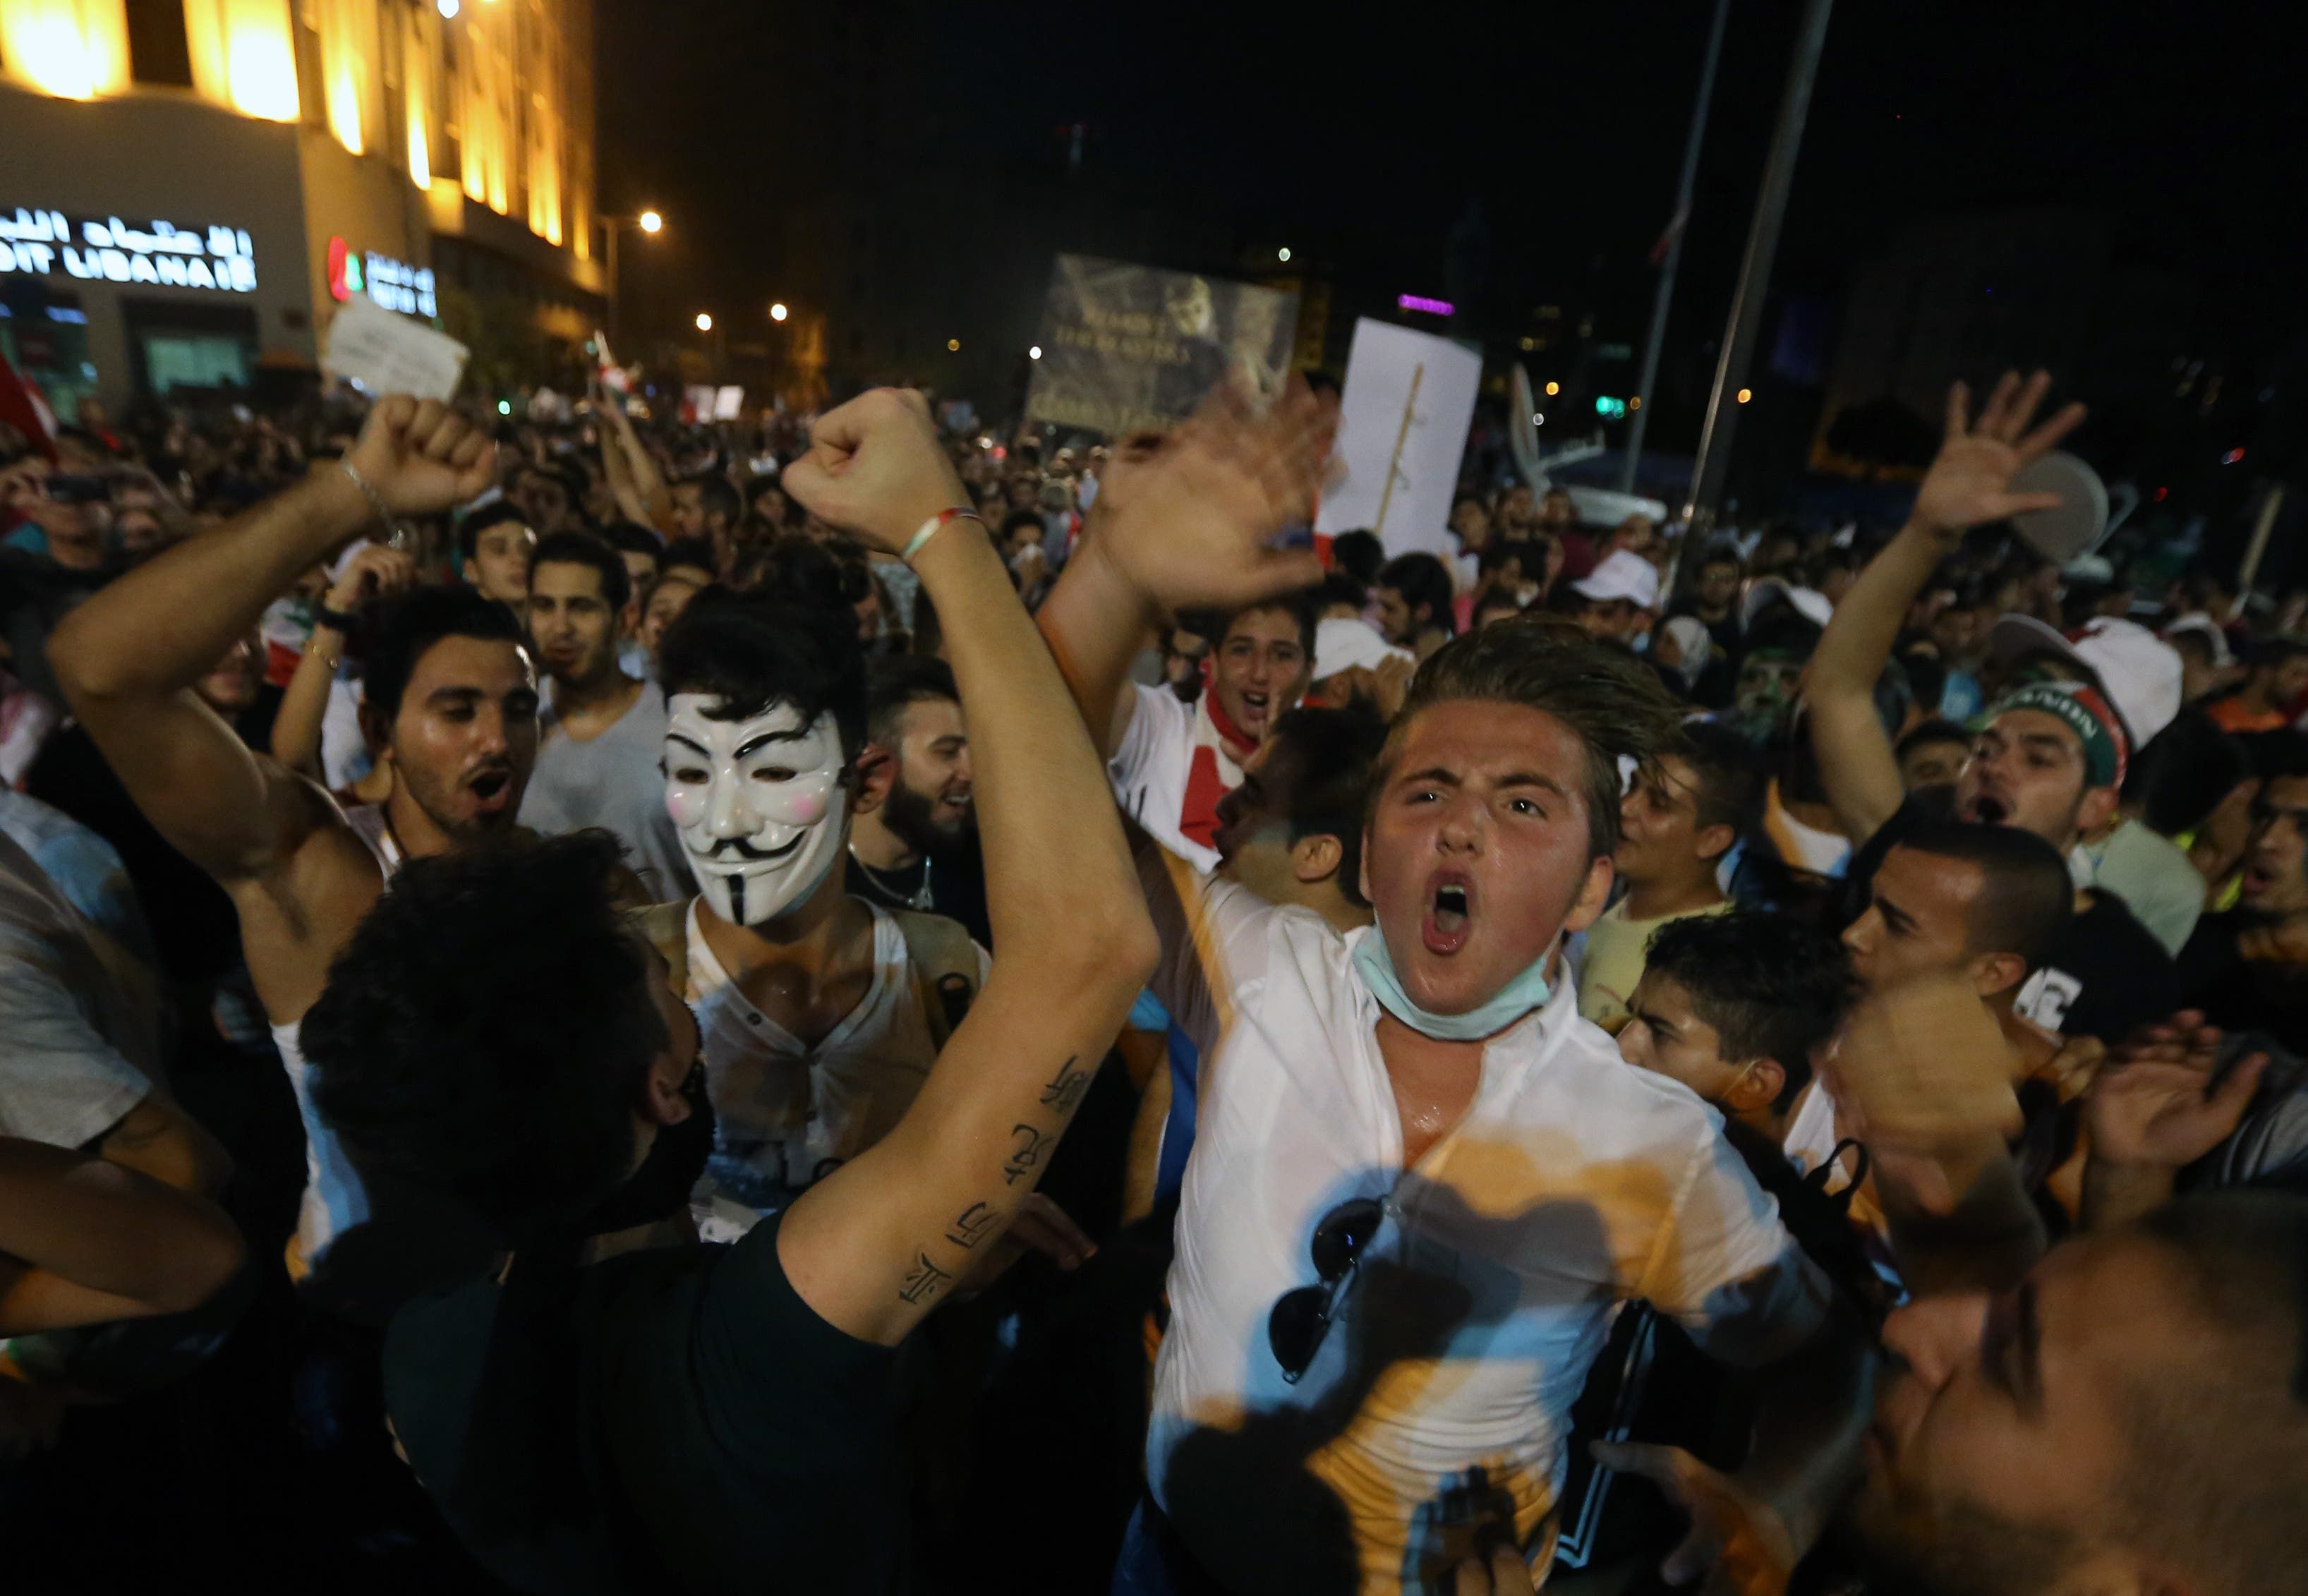 Lebanese anti-government protesters chant slogans during a protest against the trash crisis and government corruption in downtown Beirut, Lebanon, Saturday, Aug. 29, 2015.  (AP)